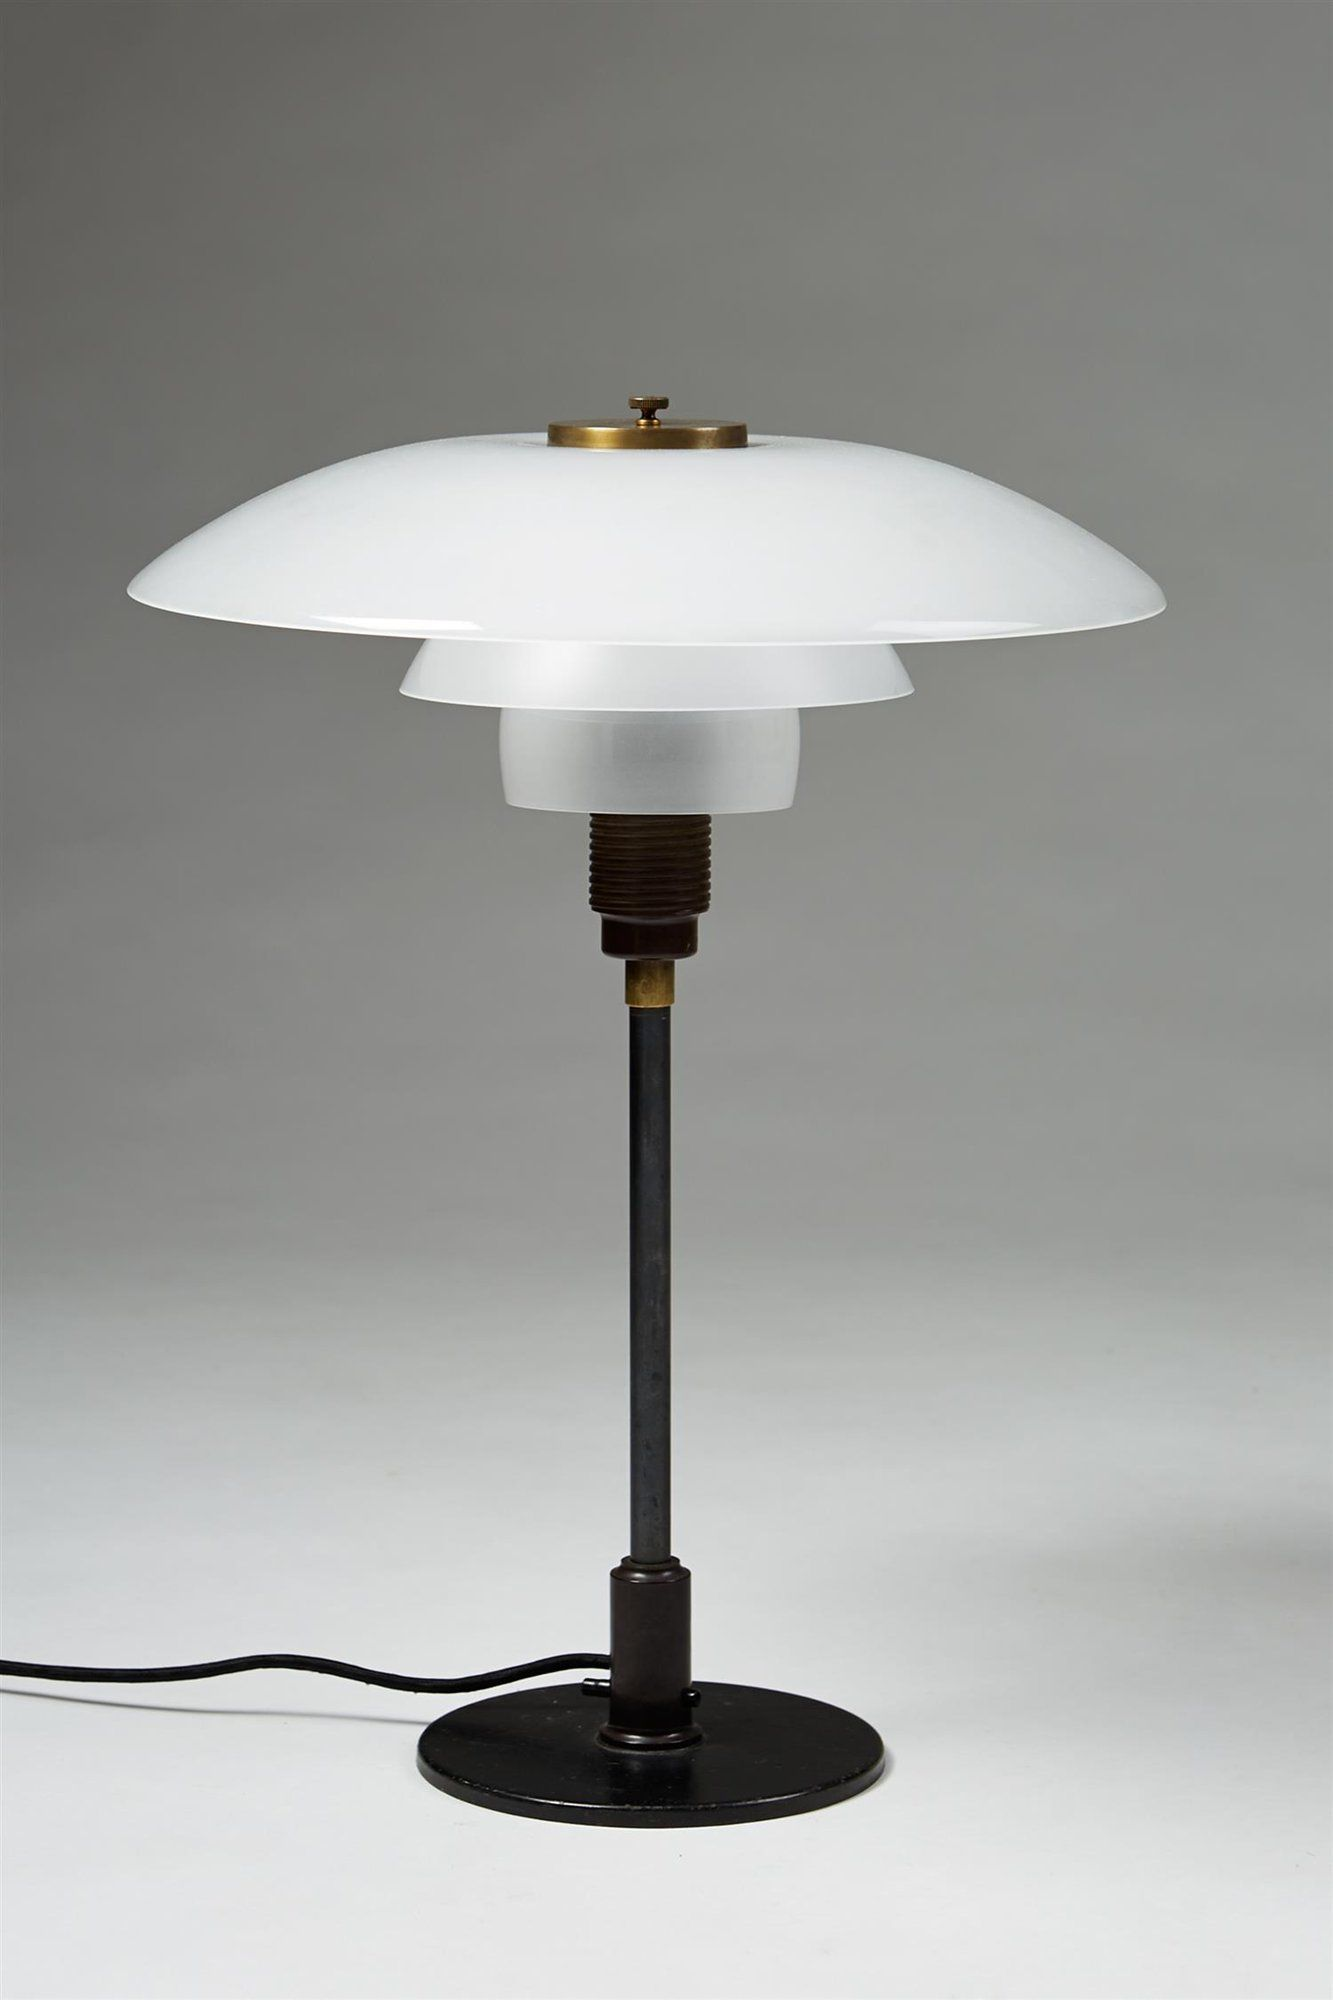 Table Lamp Ph 4 3 1930s Poul Henningsen For Louis Poulsen Denmark Antique Table Lamps Lamp Table Lamp